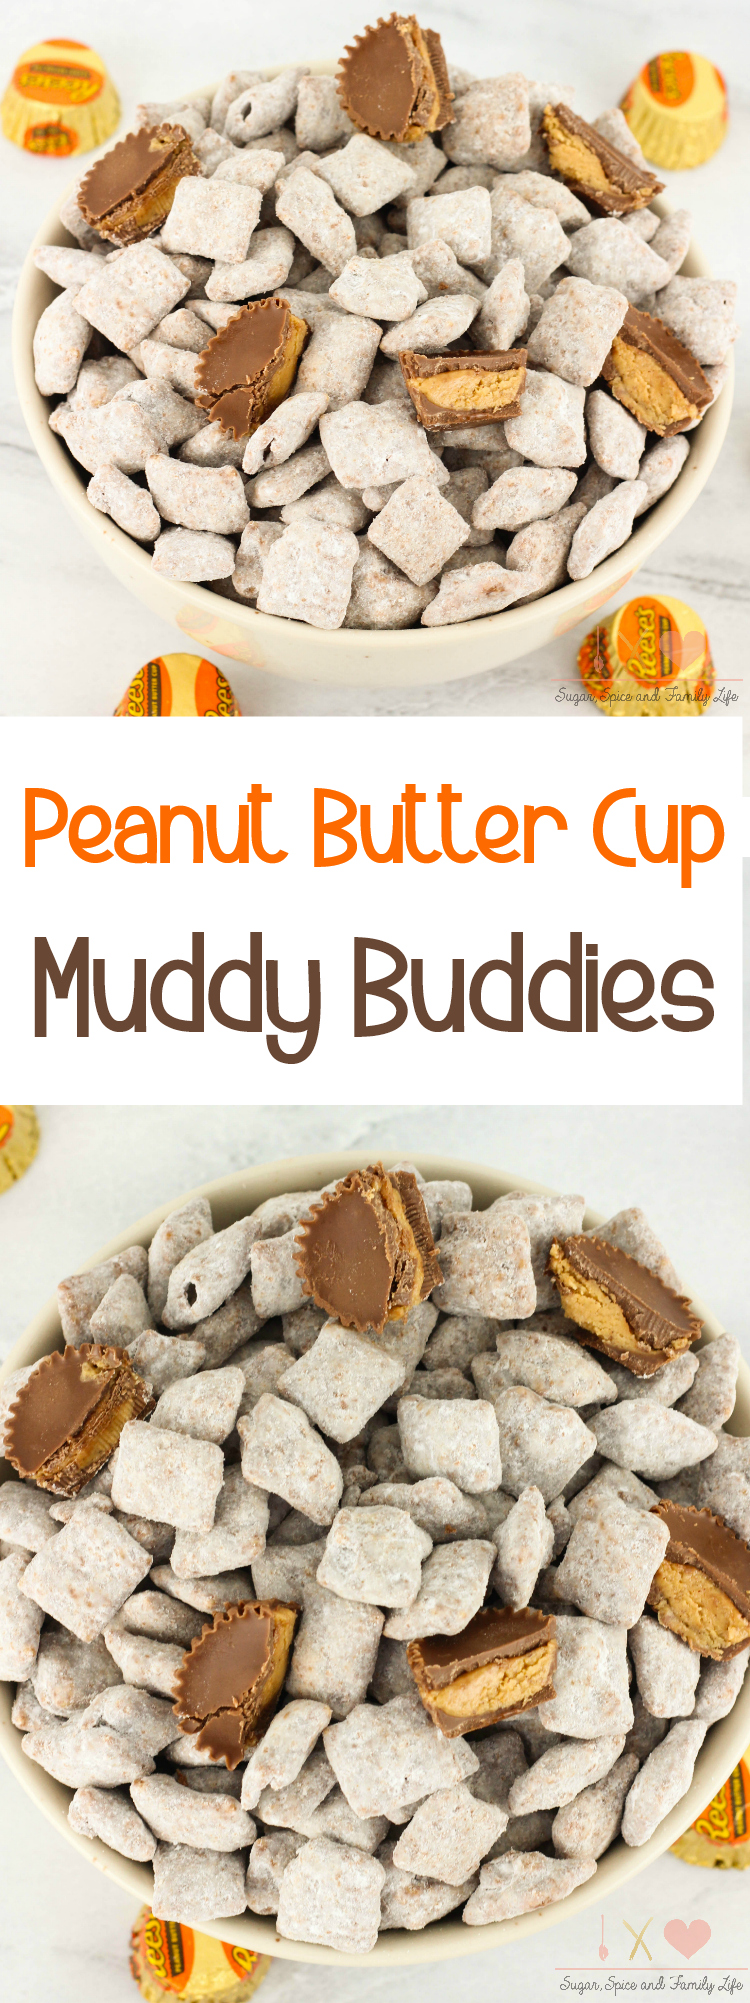 Peanut Butter Cup Muddy Buddies Recipe